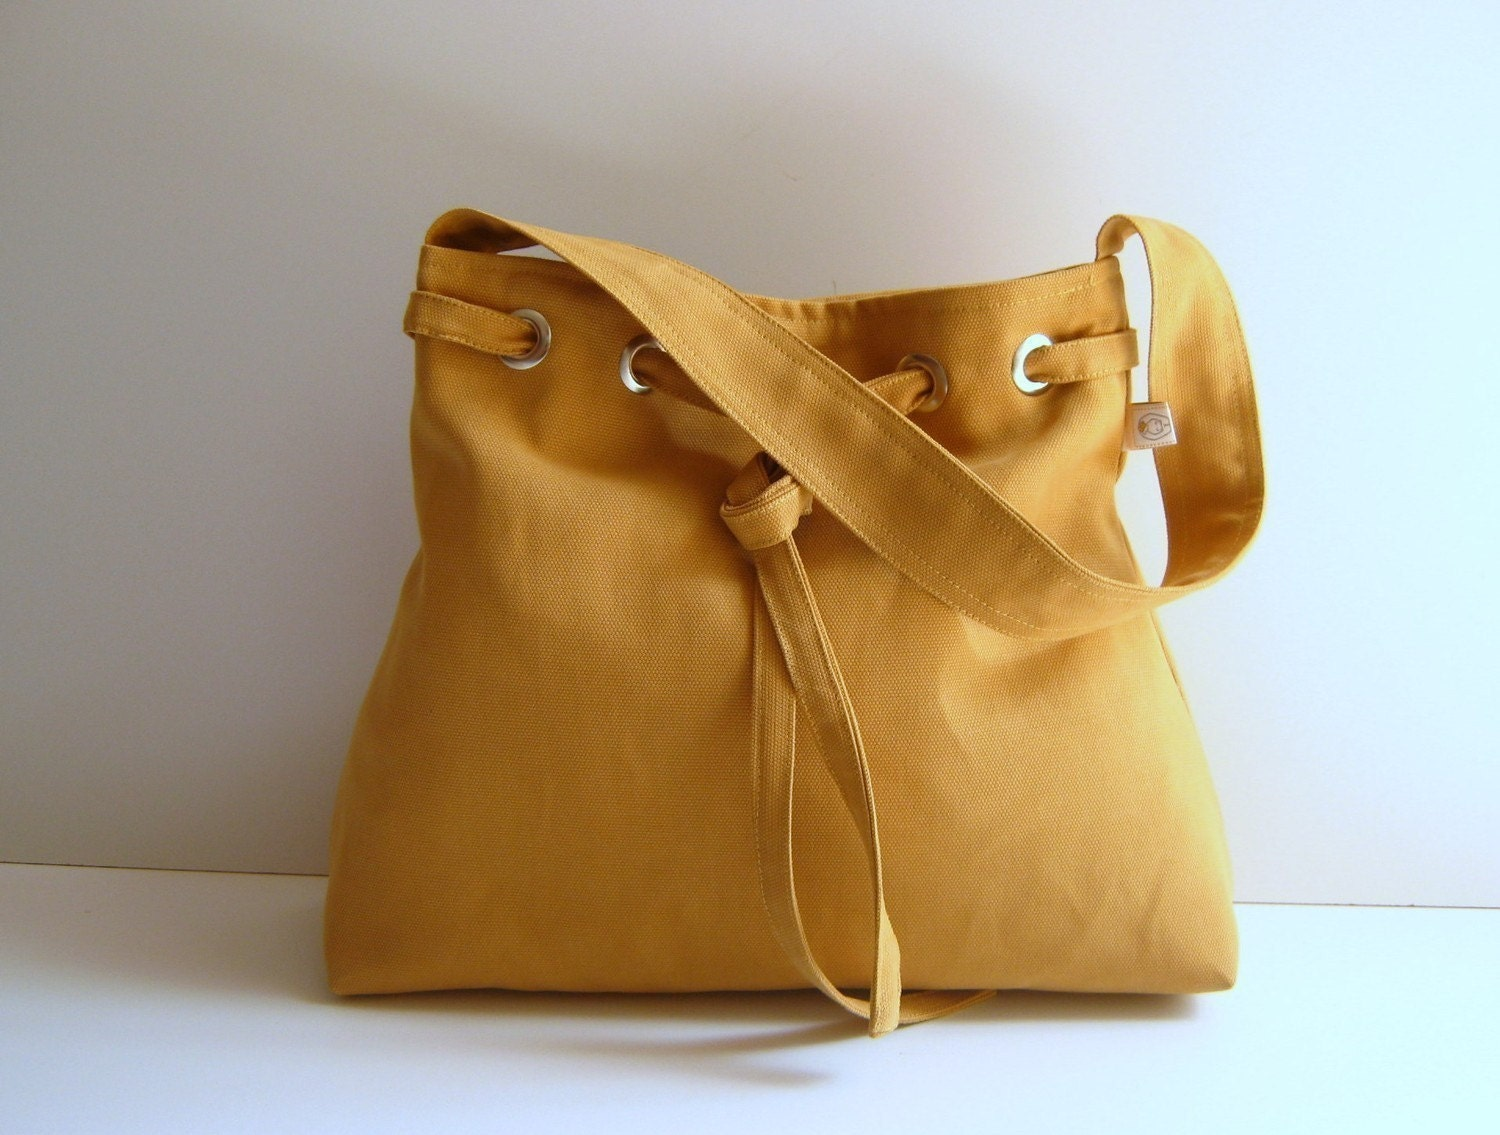 NEW Lovely Bag in Mustard Yellow - everyday purse -